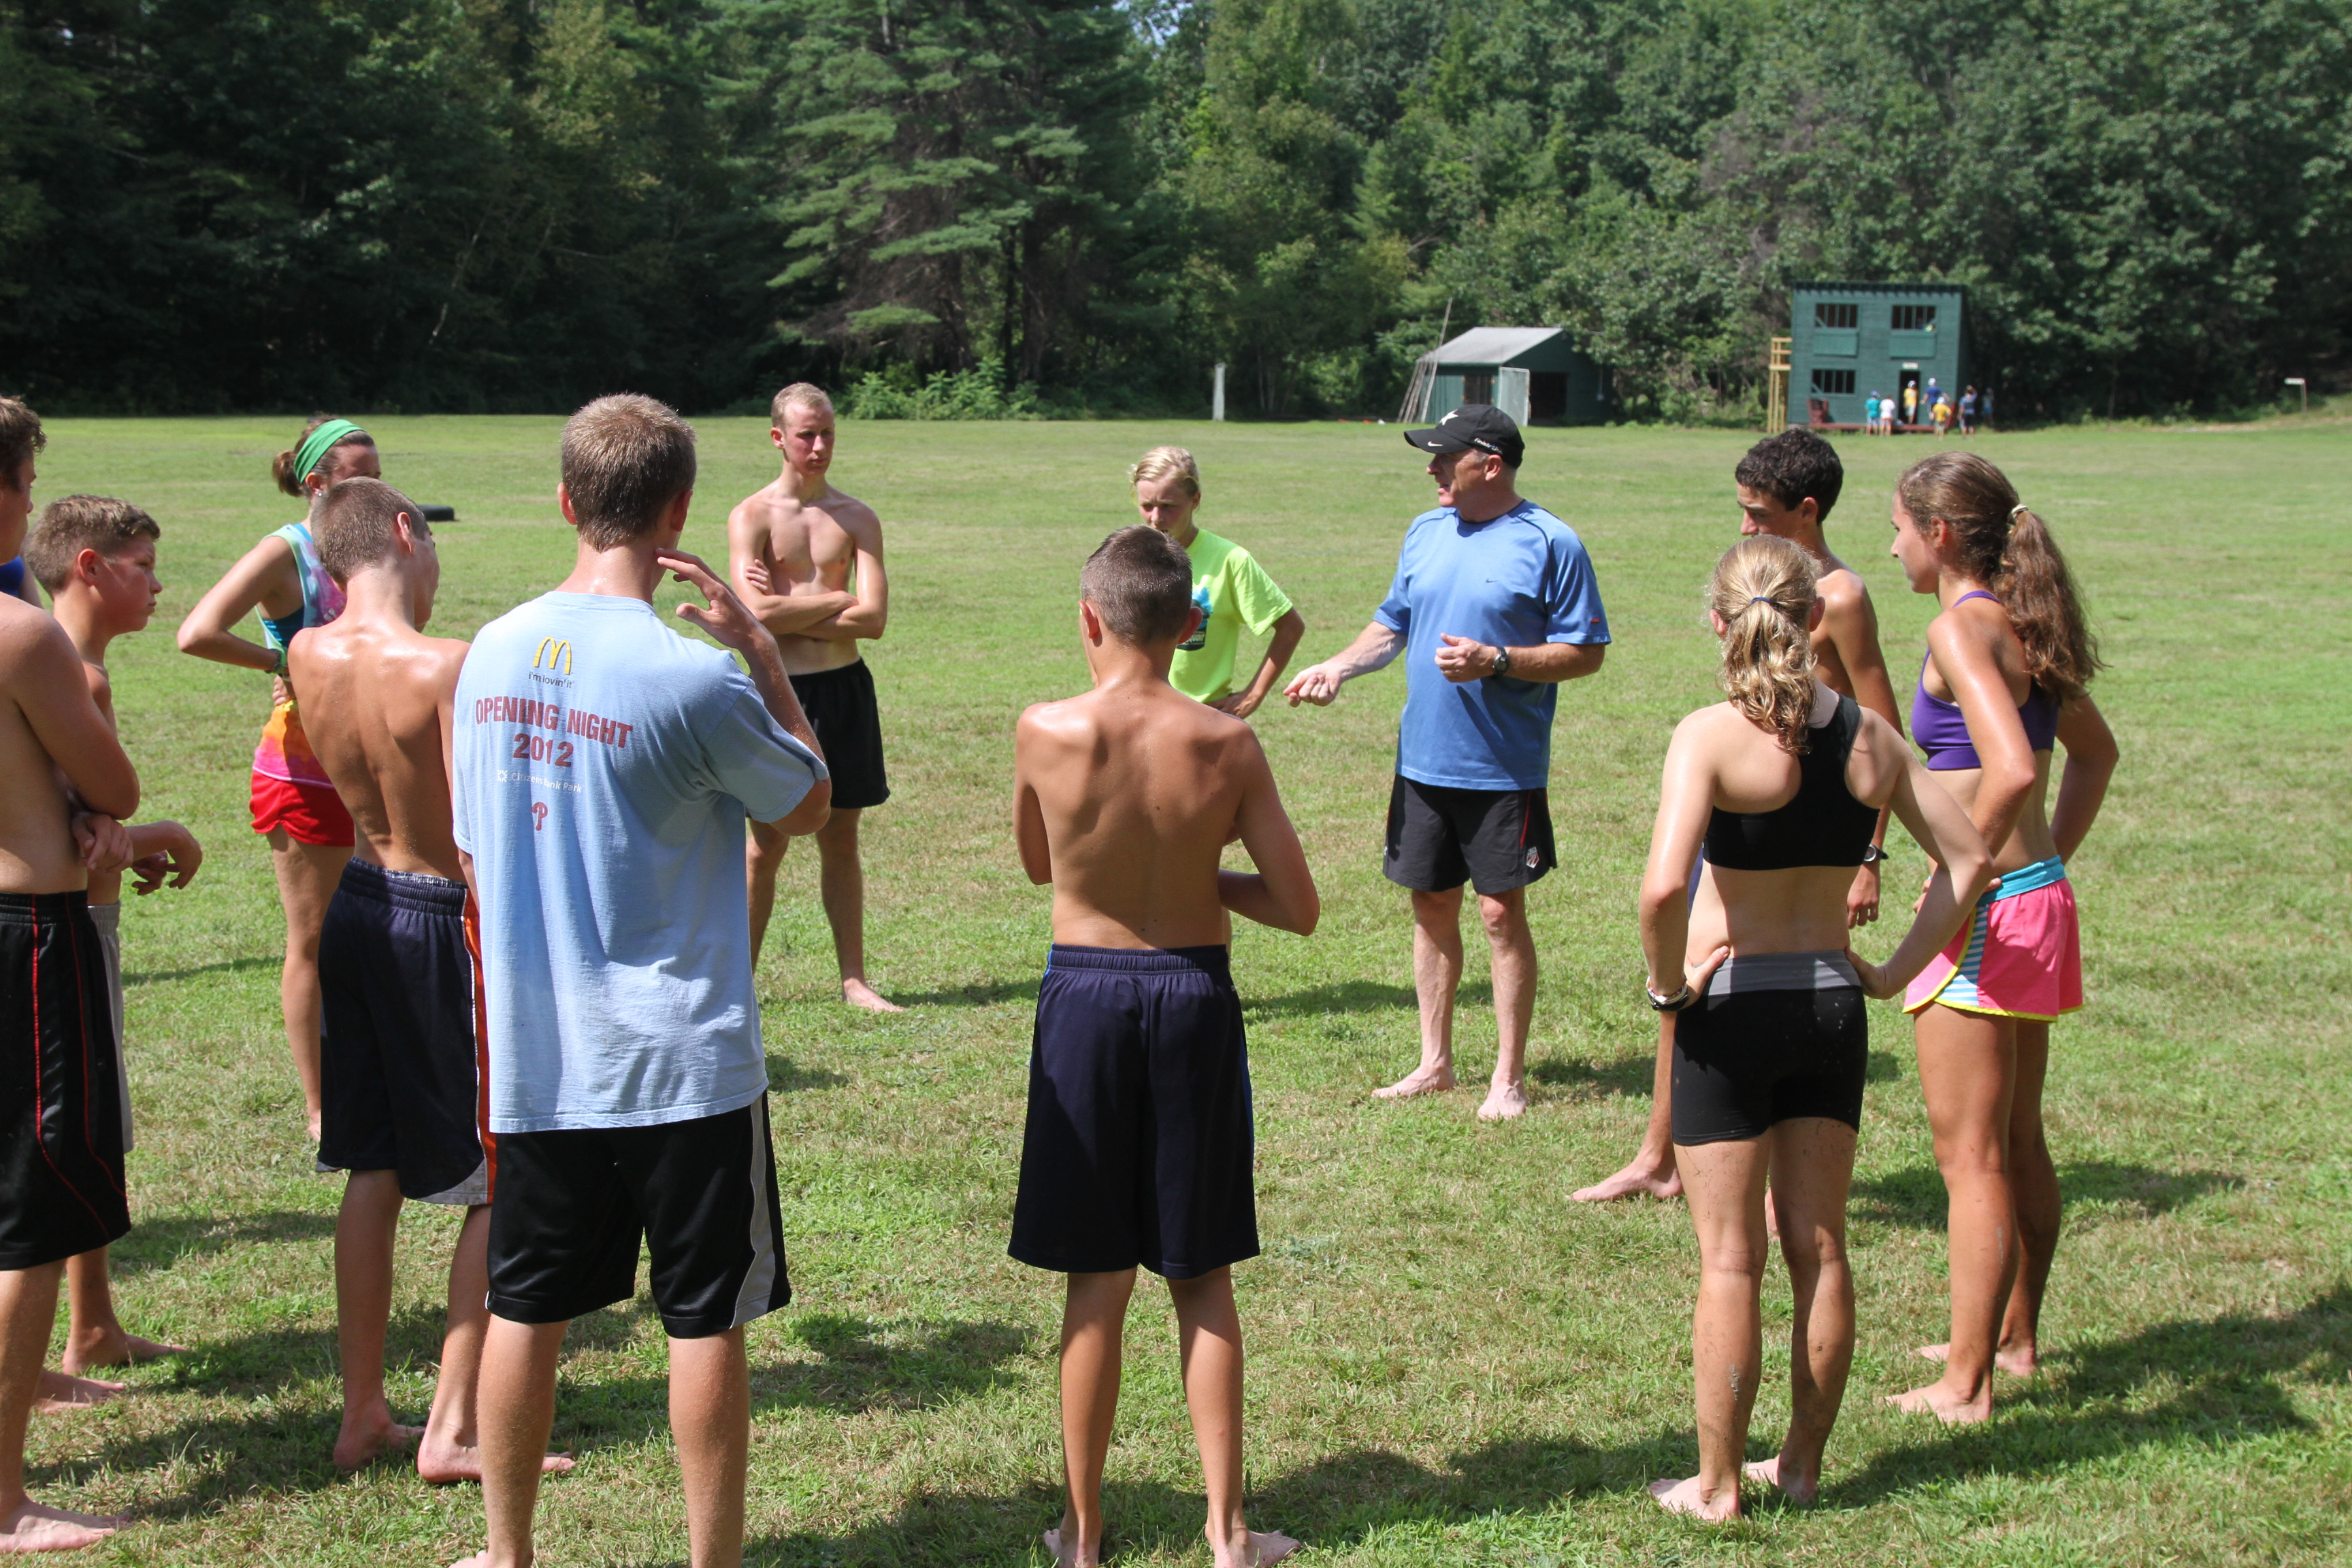 Campers receiving instruction in the field from a coach